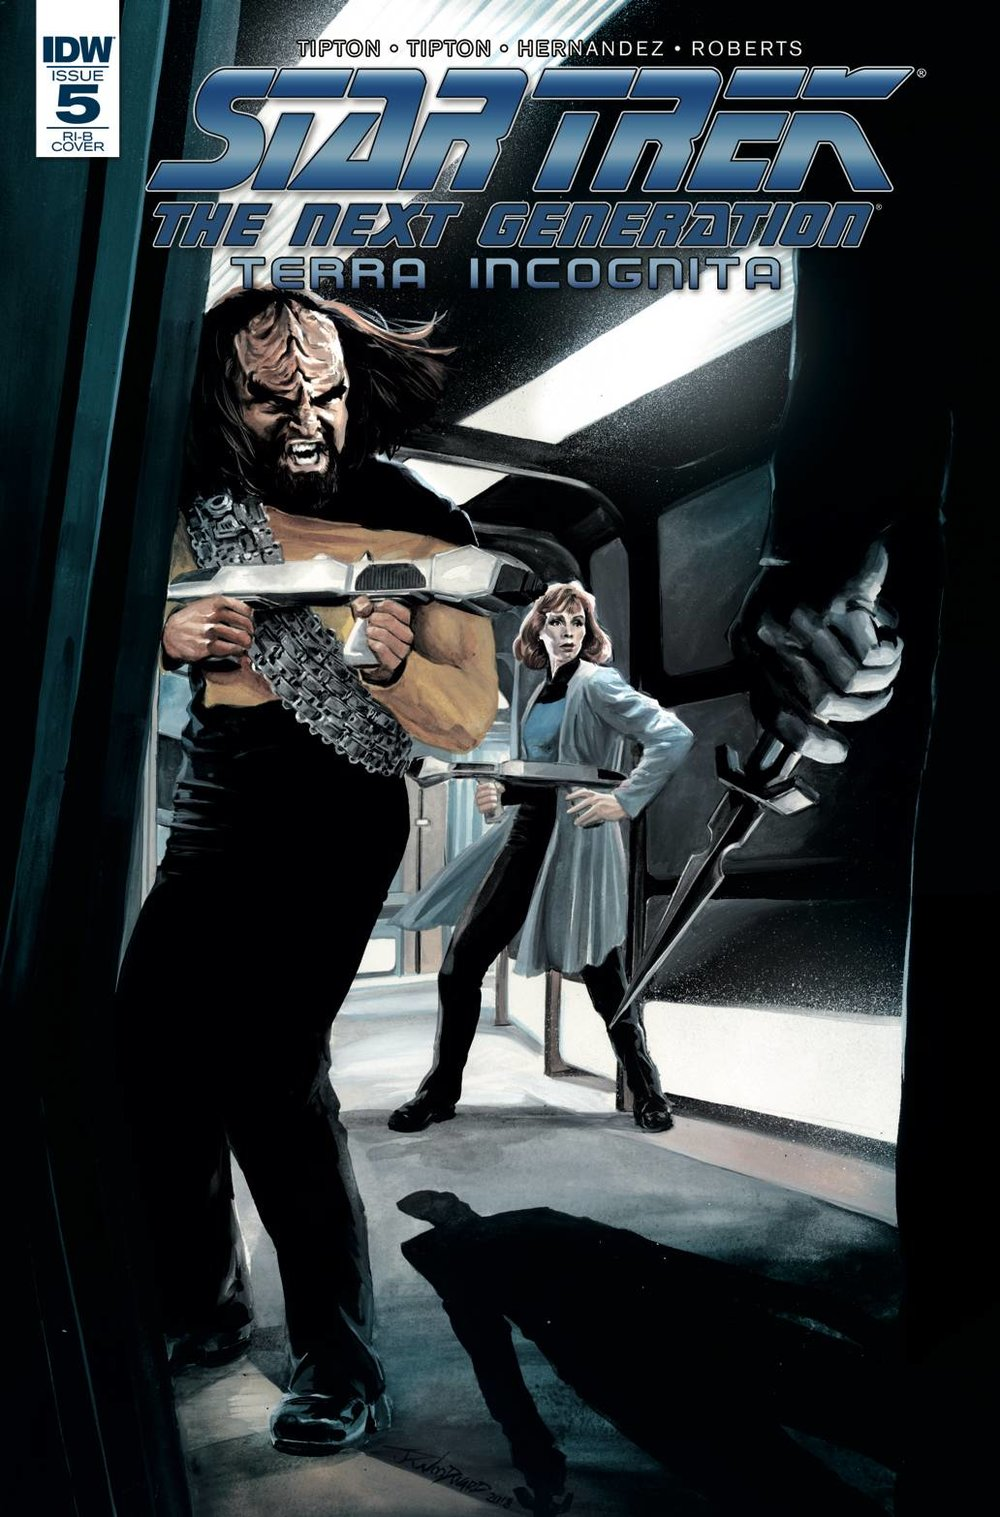 STAR TREK TNG TERRA INCOGNITA 5 25 COPY INCV WOODWARD.jpg